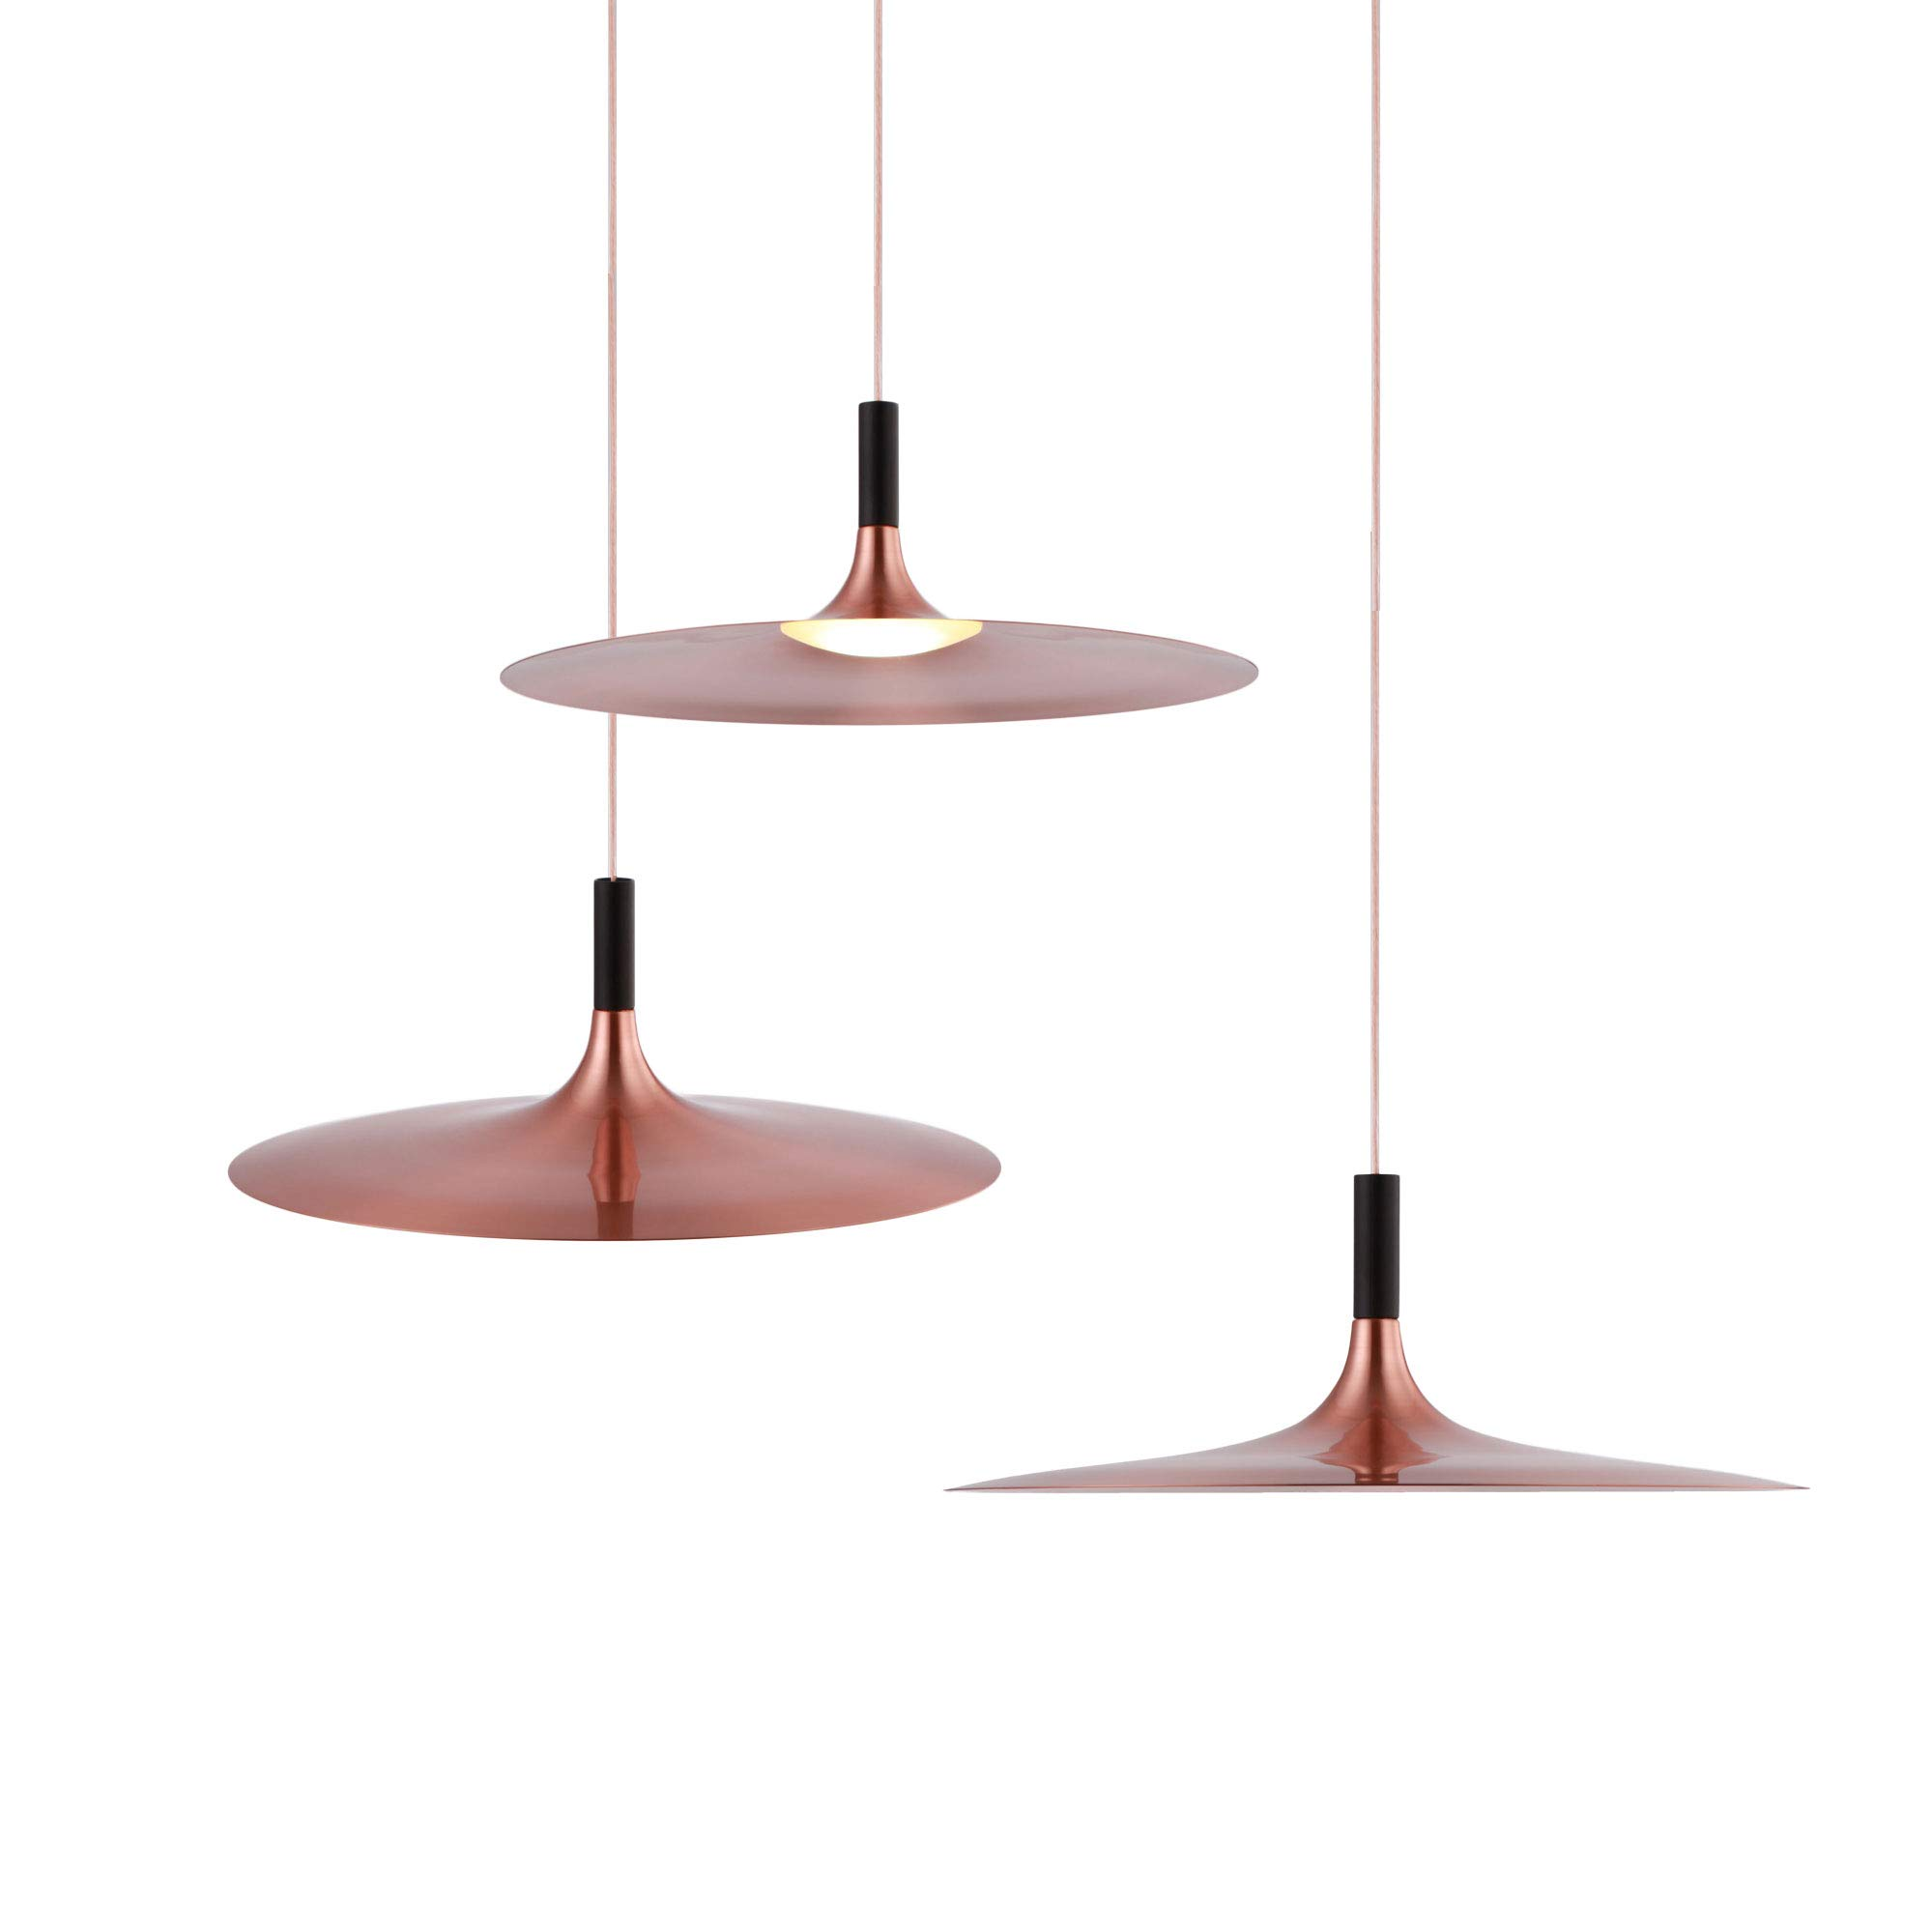 Pendant Light, LENGGO 5W (Equal 50W Halogen) LED Ceiling Hanging Lamp Fixture Rose Copper Perfect for Kitchen Island, Restaurant, Bar, Cafes, Dinning Room (1 Pack)